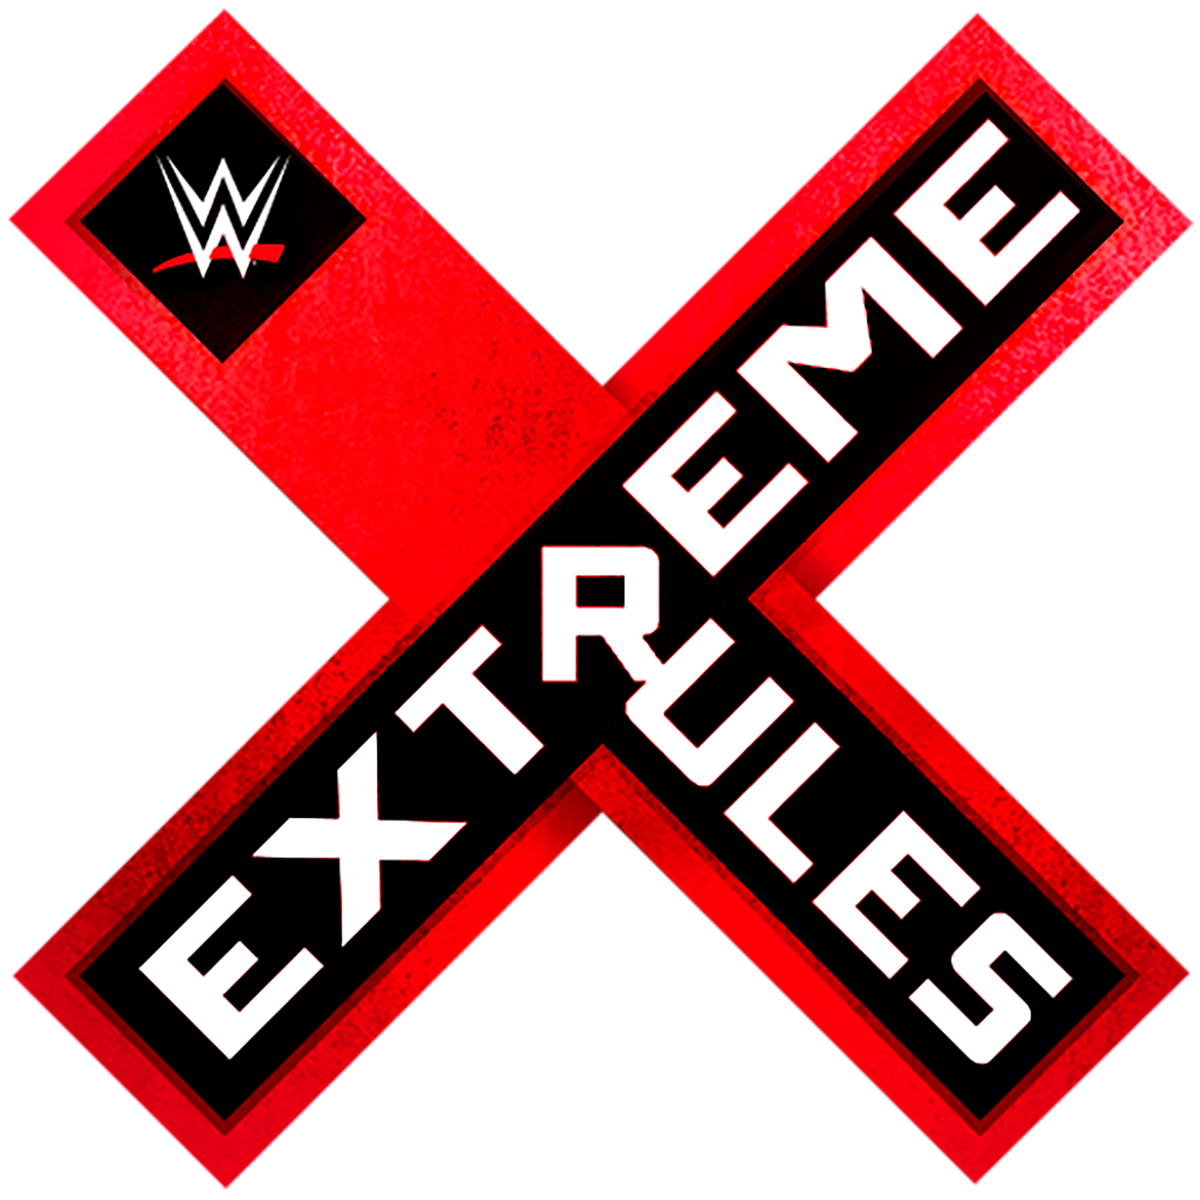 WWE Extreme Rules 2020 PPV Live Stream Free Pay-Per-View